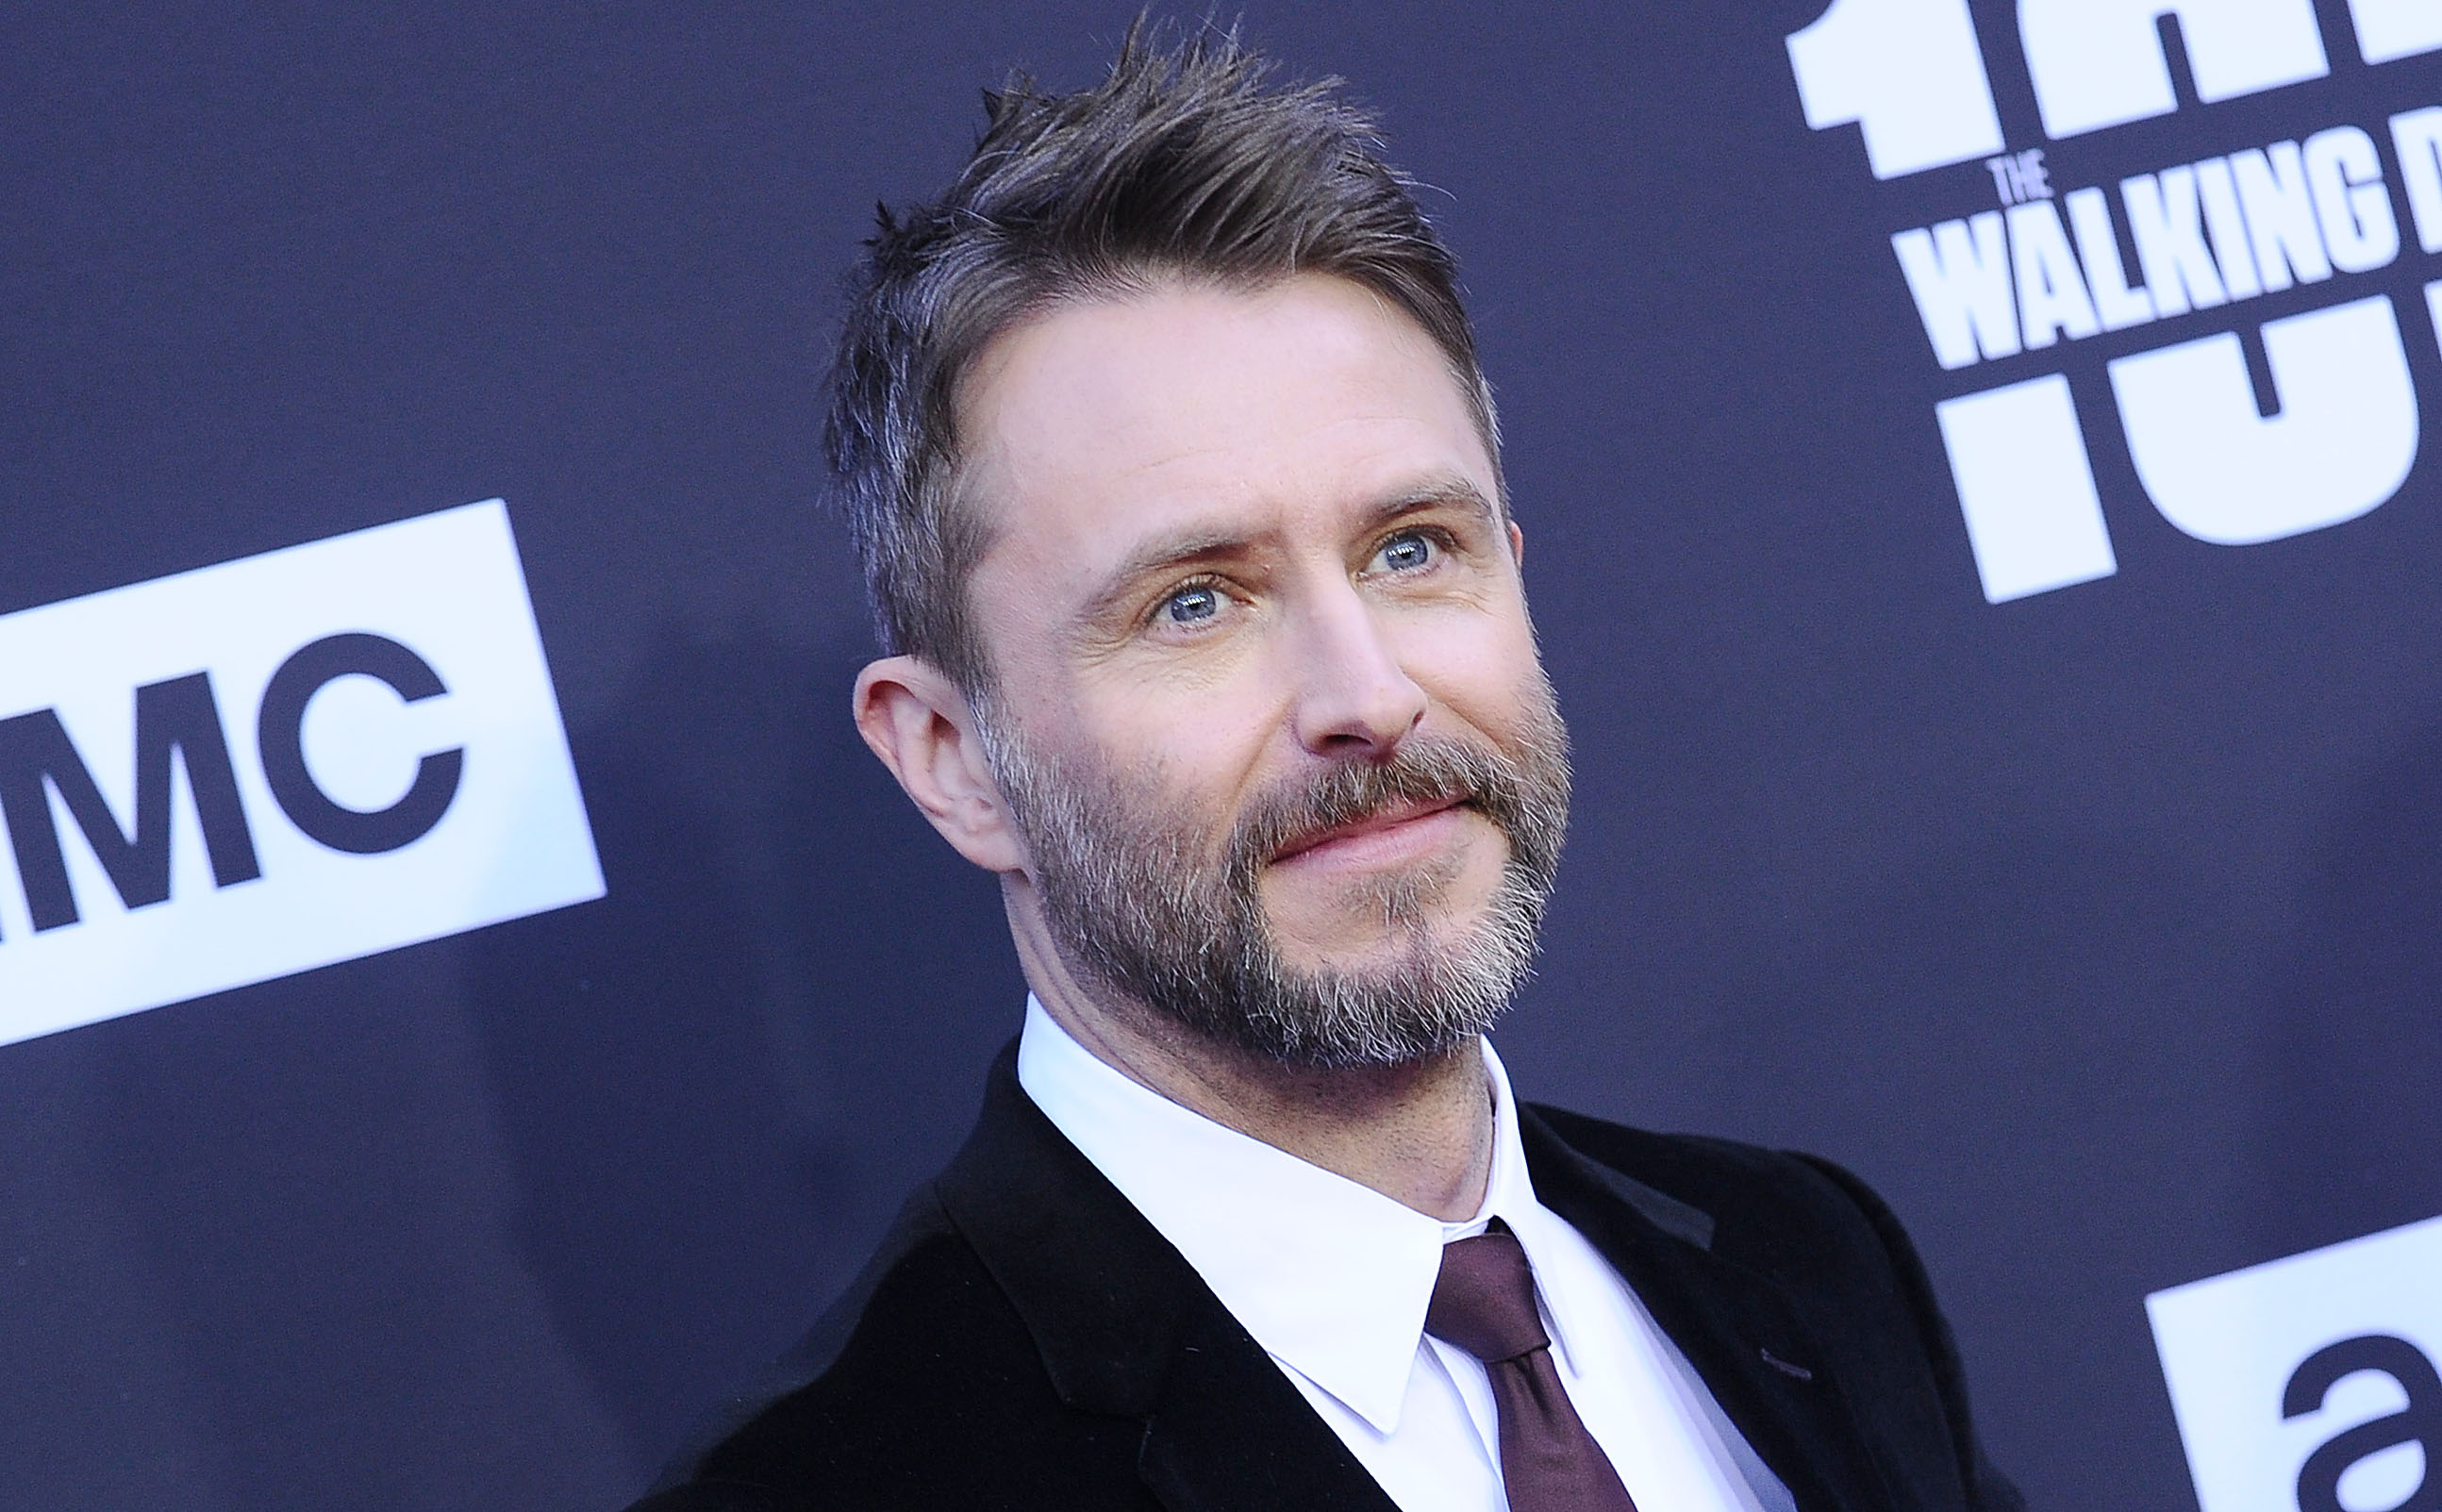 Chris Hardwick attends the 100th episode celebration off  The Walking Dead  at The Greek Theatre on October 22, 2017 in Los Angeles, California.